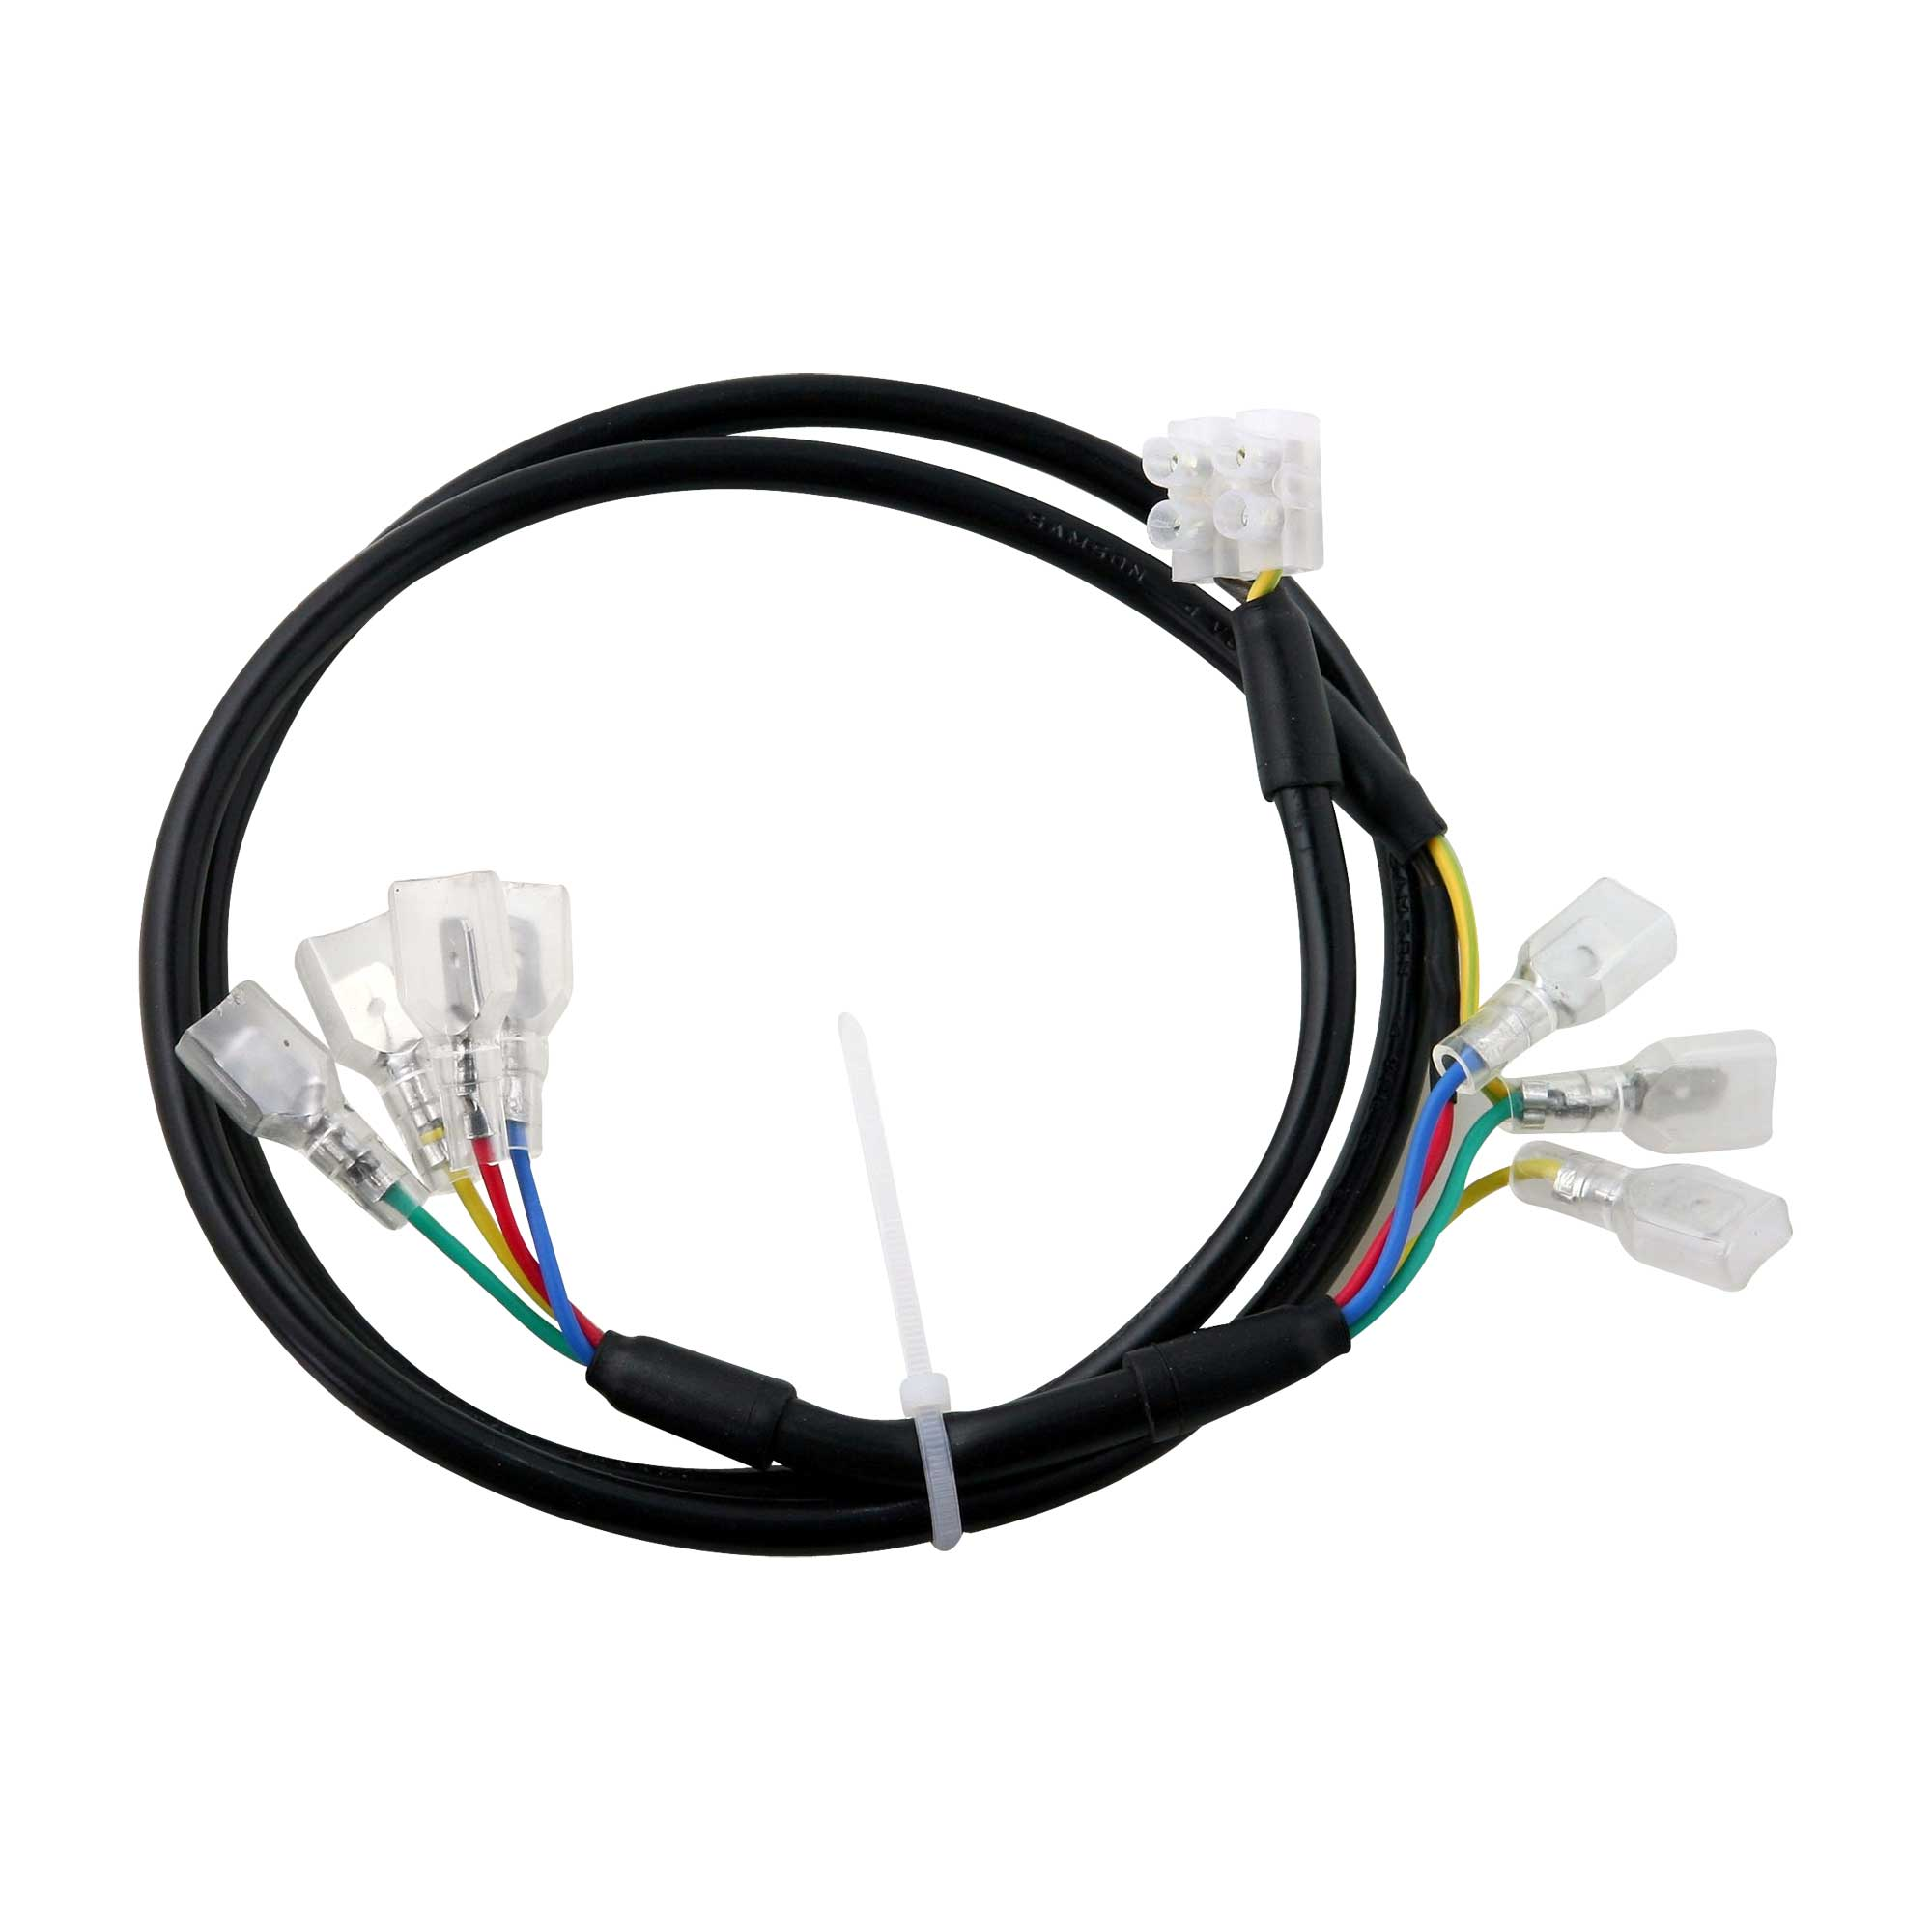 Canbus Sensor Wiring Kit What Is Can Bus